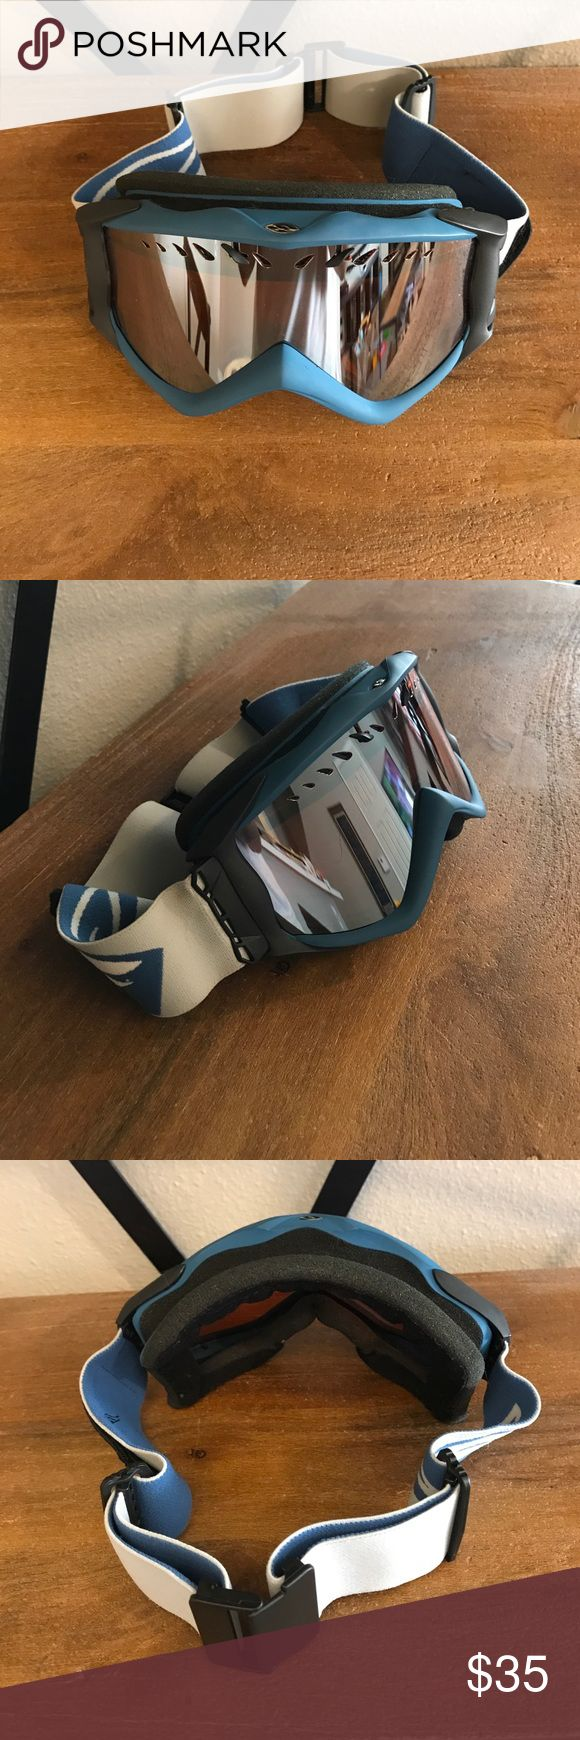 Smith Snowboard Goggles Smith Goggles in good condition with never used extra lens. Comes with two additional velcro badges that you can switch out on the side of the goggle strap. Accessories